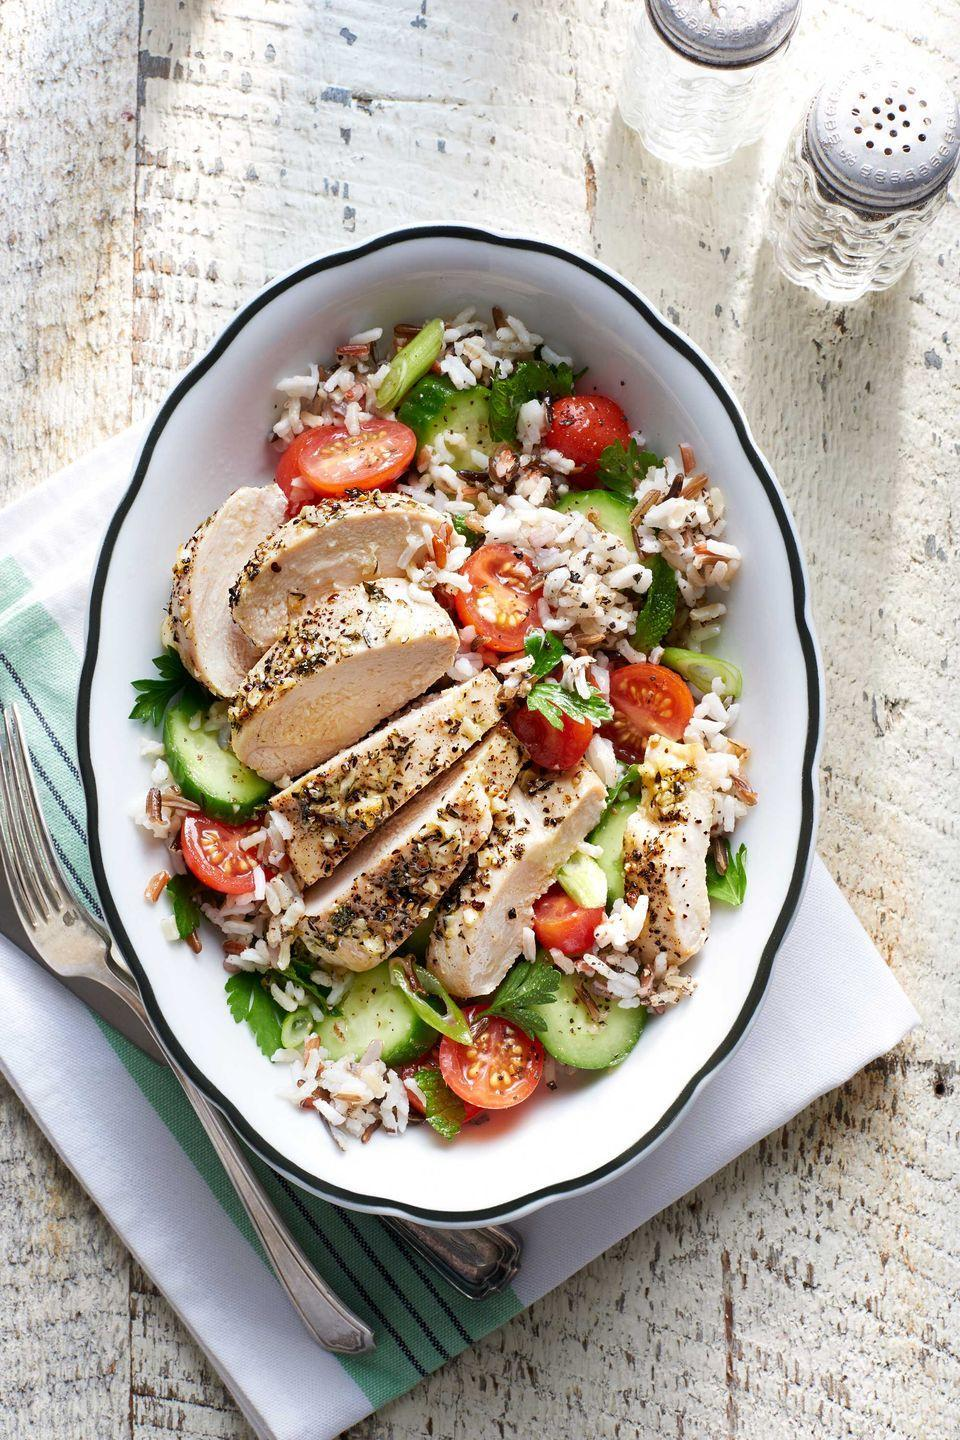 """<p>This chicken dish is a light and healthy weeknight meal that's sure to please.</p><p><strong><a href=""""https://www.countryliving.com/food-drinks/recipes/a275/greek-chicken-tomato-rice-salad-recipe-clx0315/"""" rel=""""nofollow noopener"""" target=""""_blank"""" data-ylk=""""slk:Get the recipe"""" class=""""link rapid-noclick-resp"""">Get the recipe</a>.</strong></p>"""